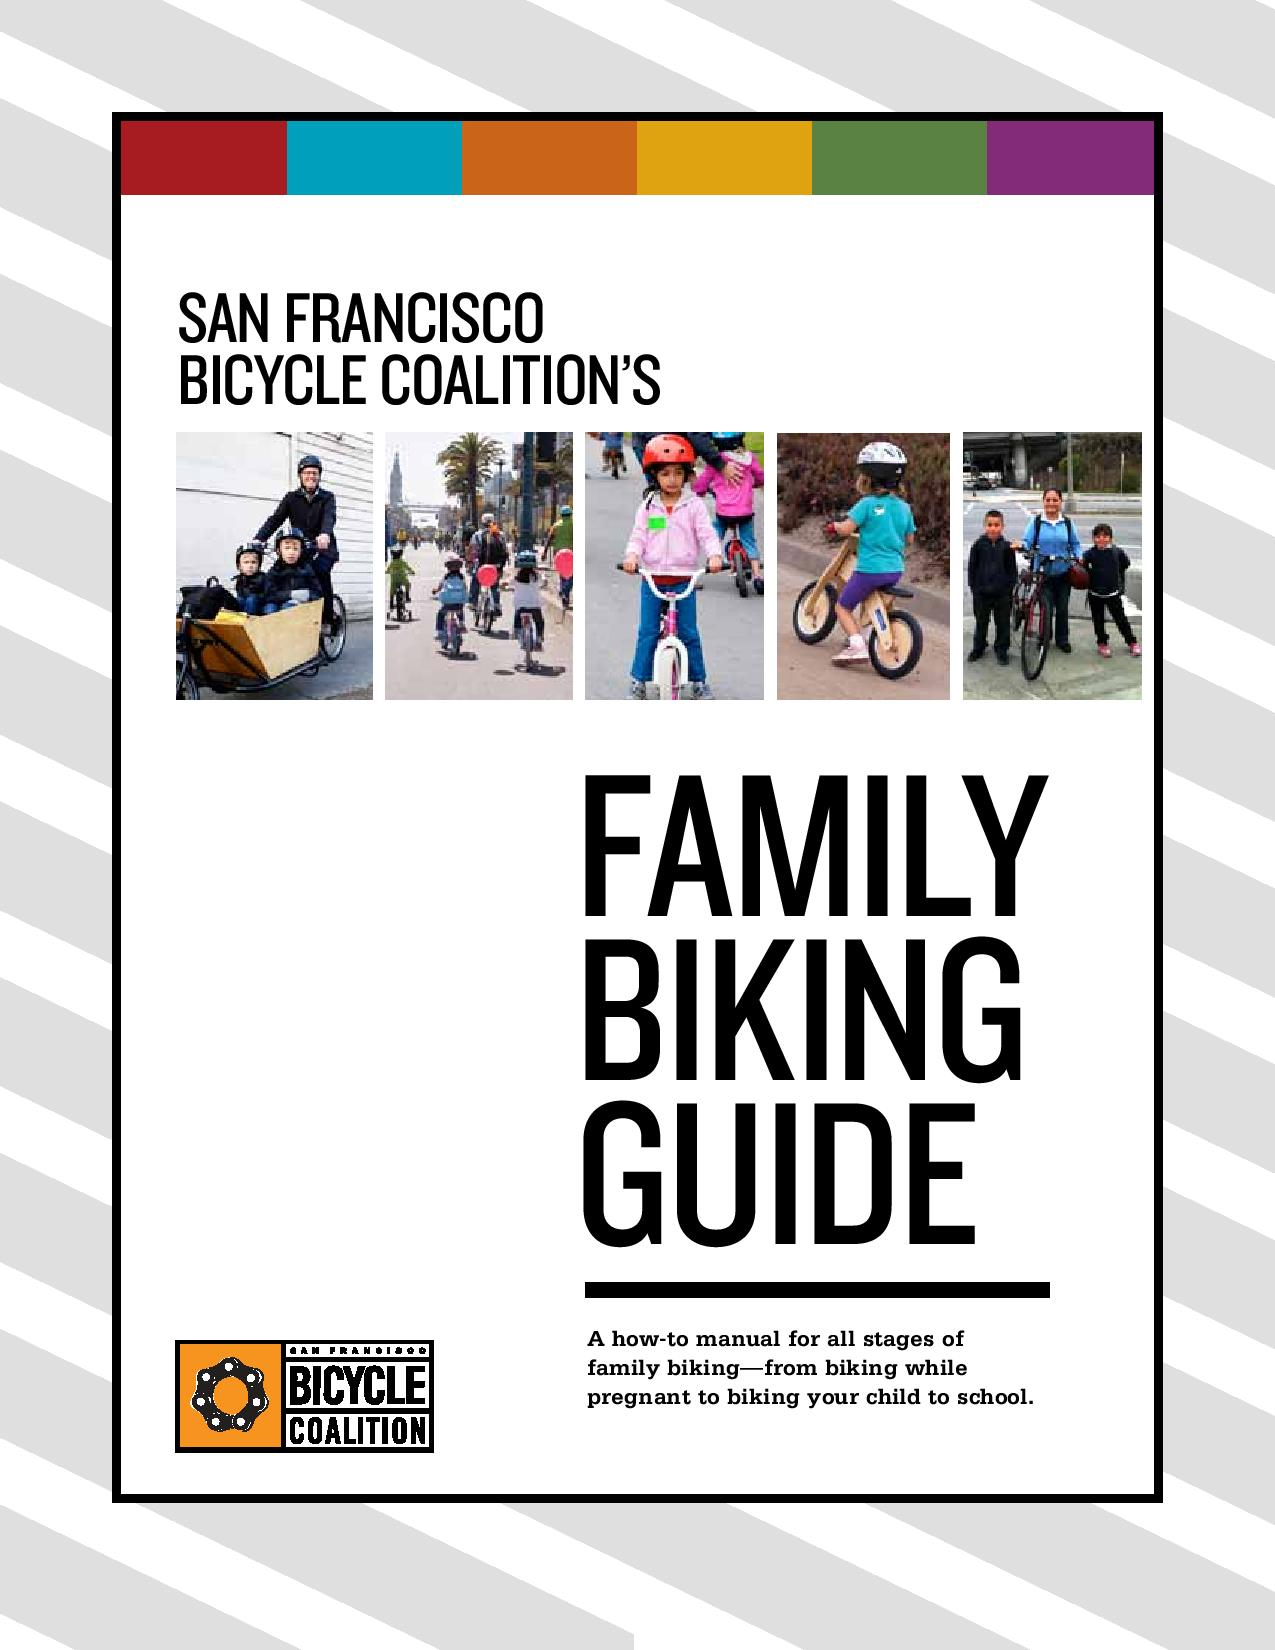 SF-Bicycle-Coalition-FamilyBikingGuide-page-001.jpg